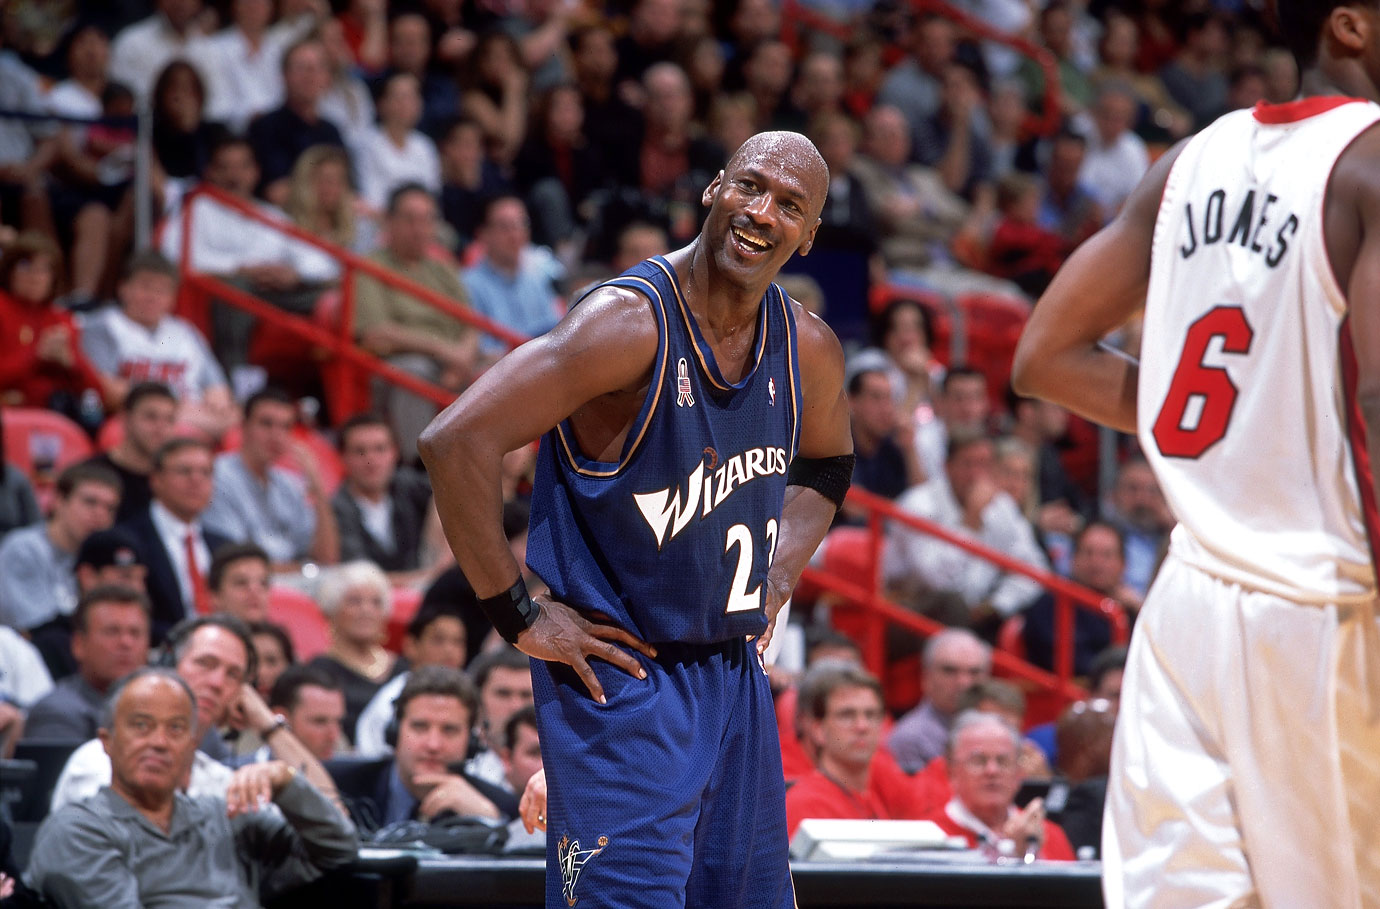 Michael Jordan flashes a smile during a Washington Wizards game against the Miami Heat in November 2001.